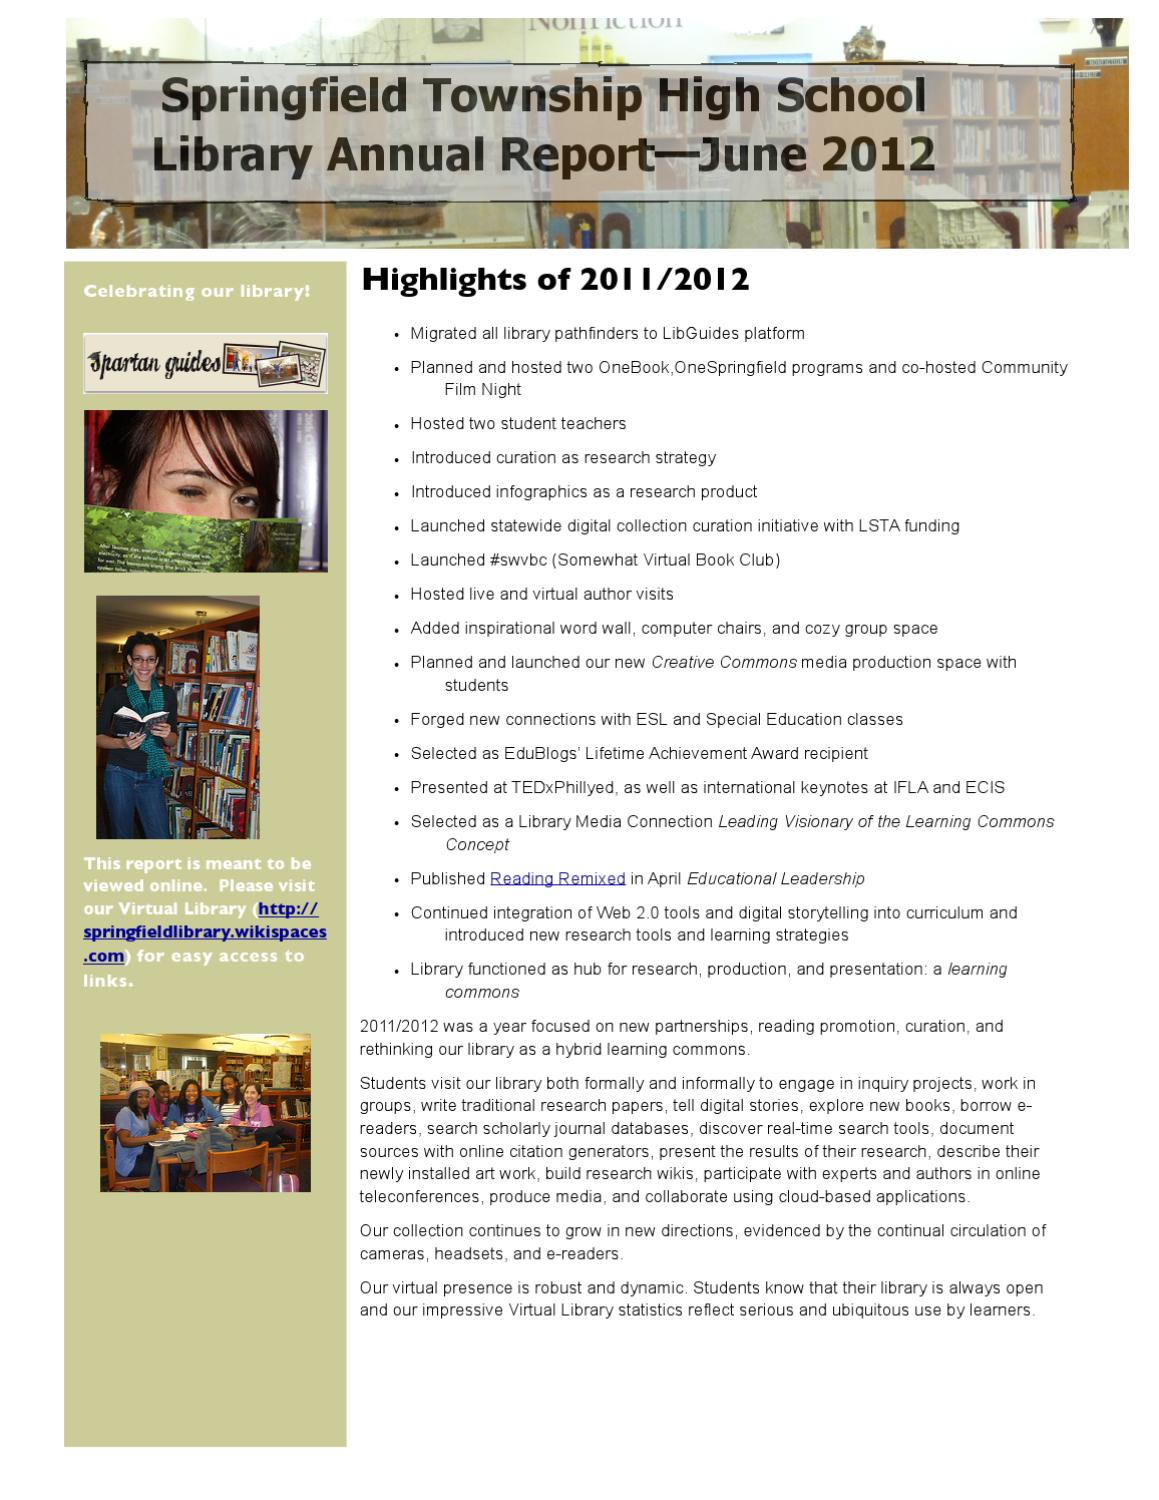 STHS Library Annual Report, June 2012